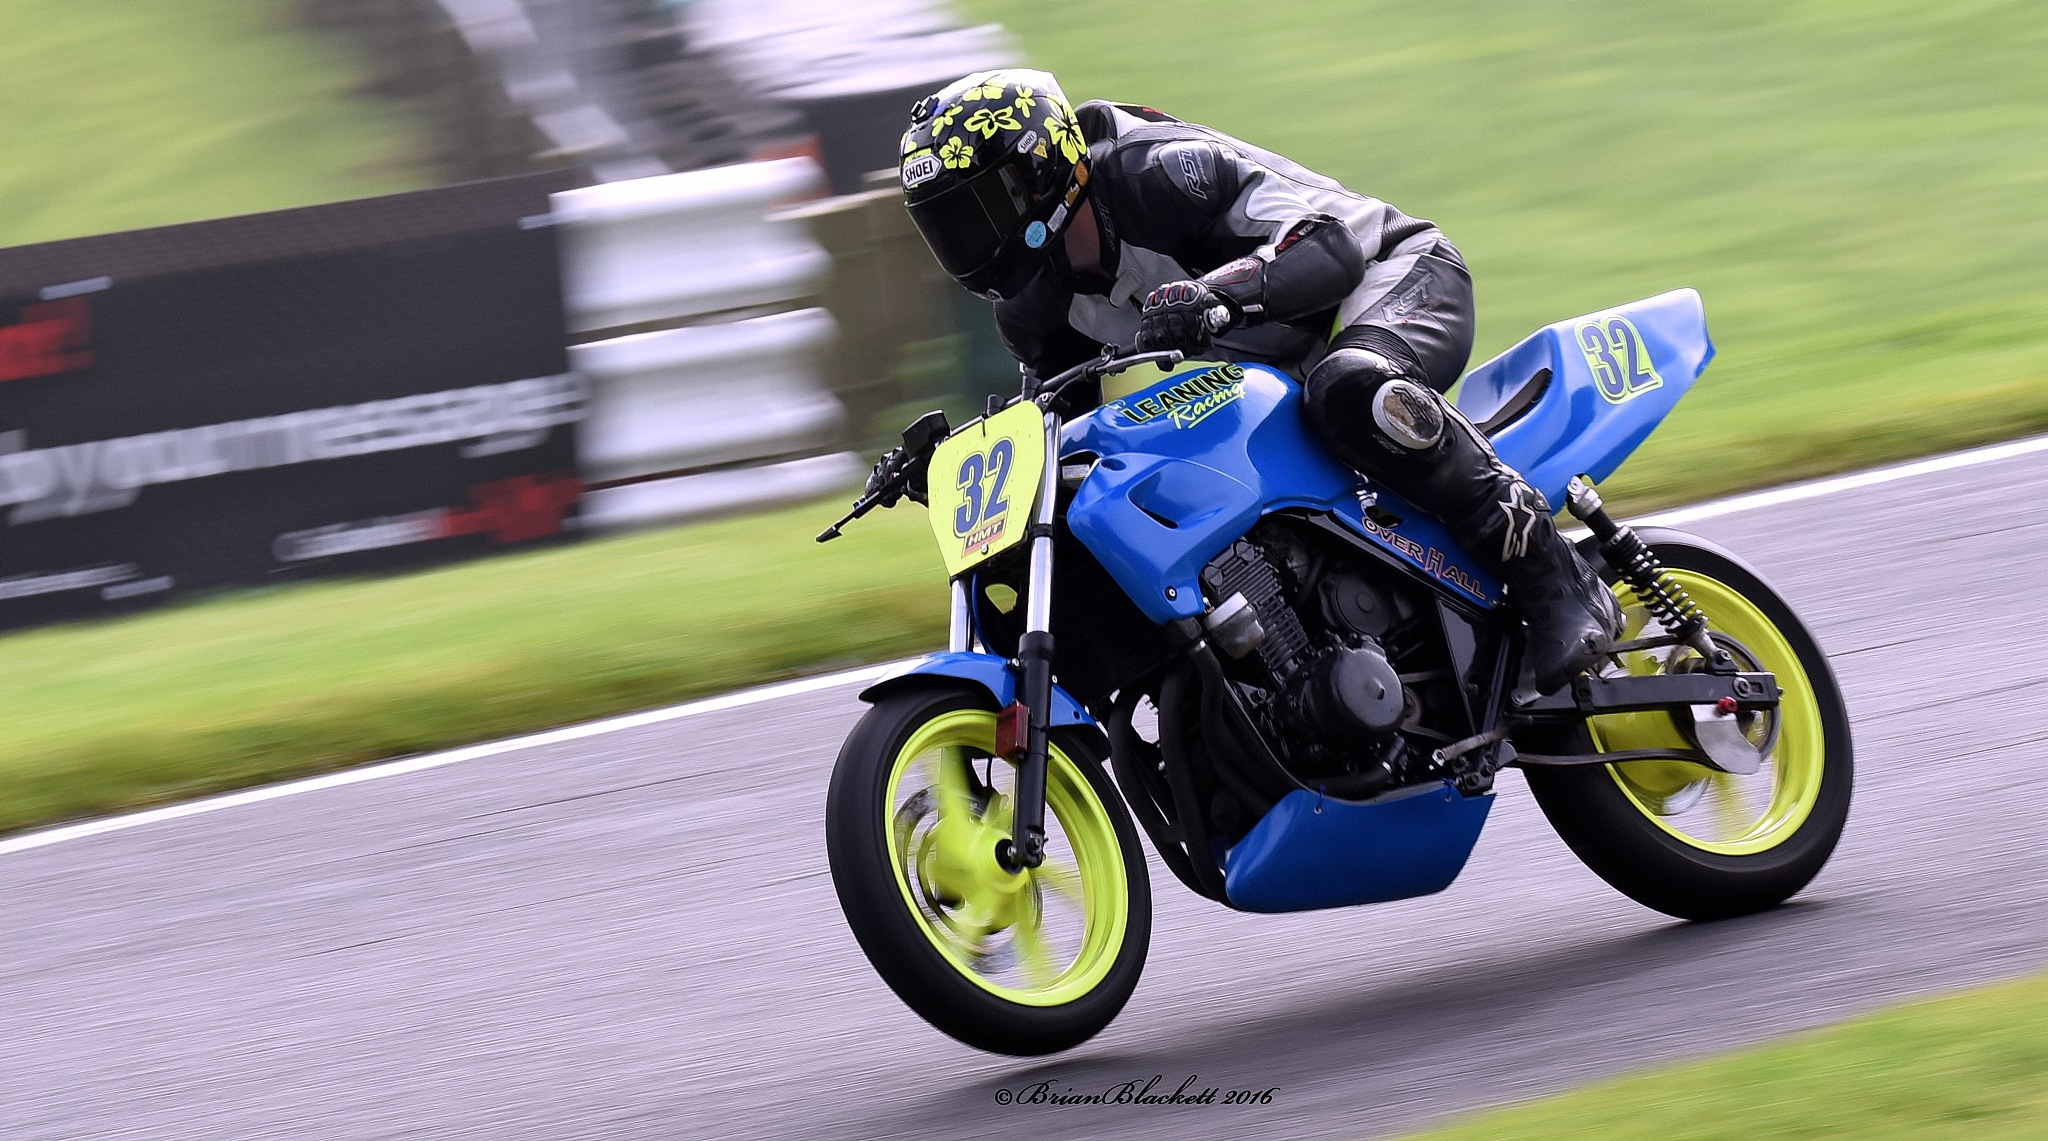 Thundersport 500 Elite Championships Cadwell Park Lincolnshire 2016 by brianblackett